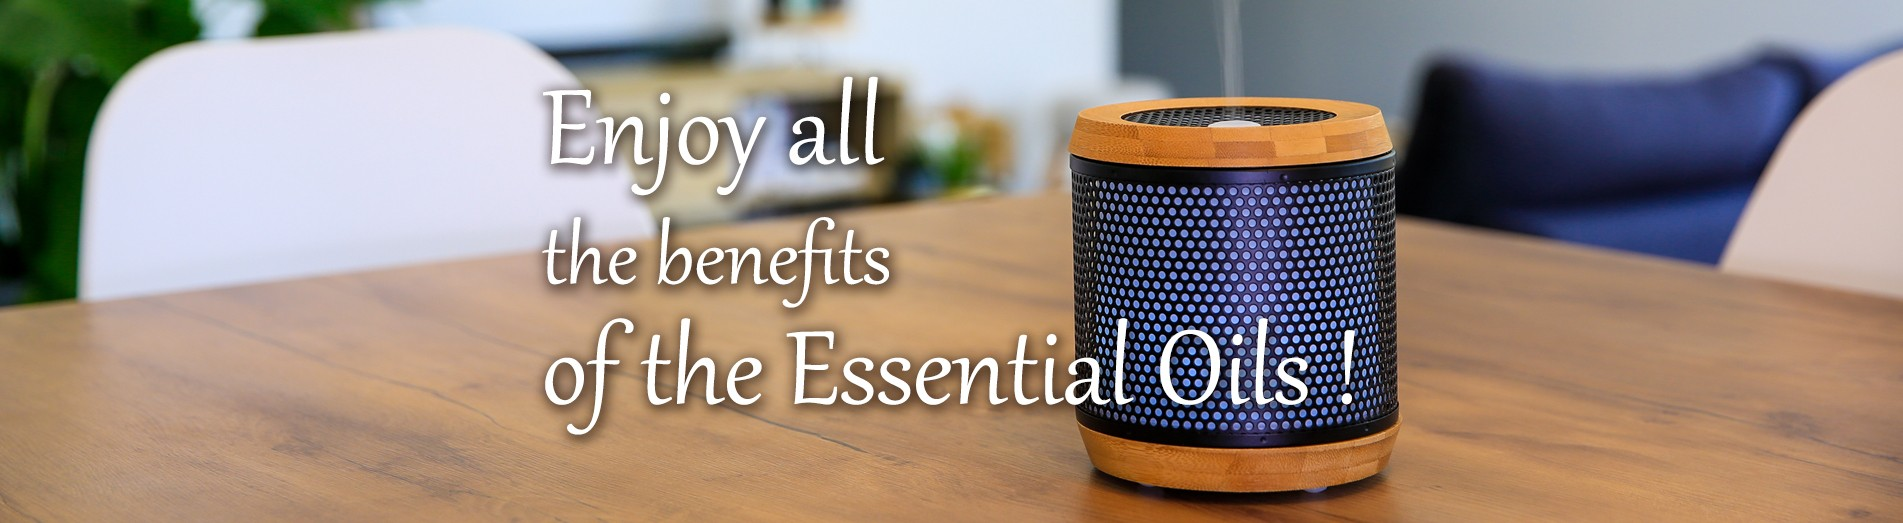 Enjoy all the benefits of the essential oils !